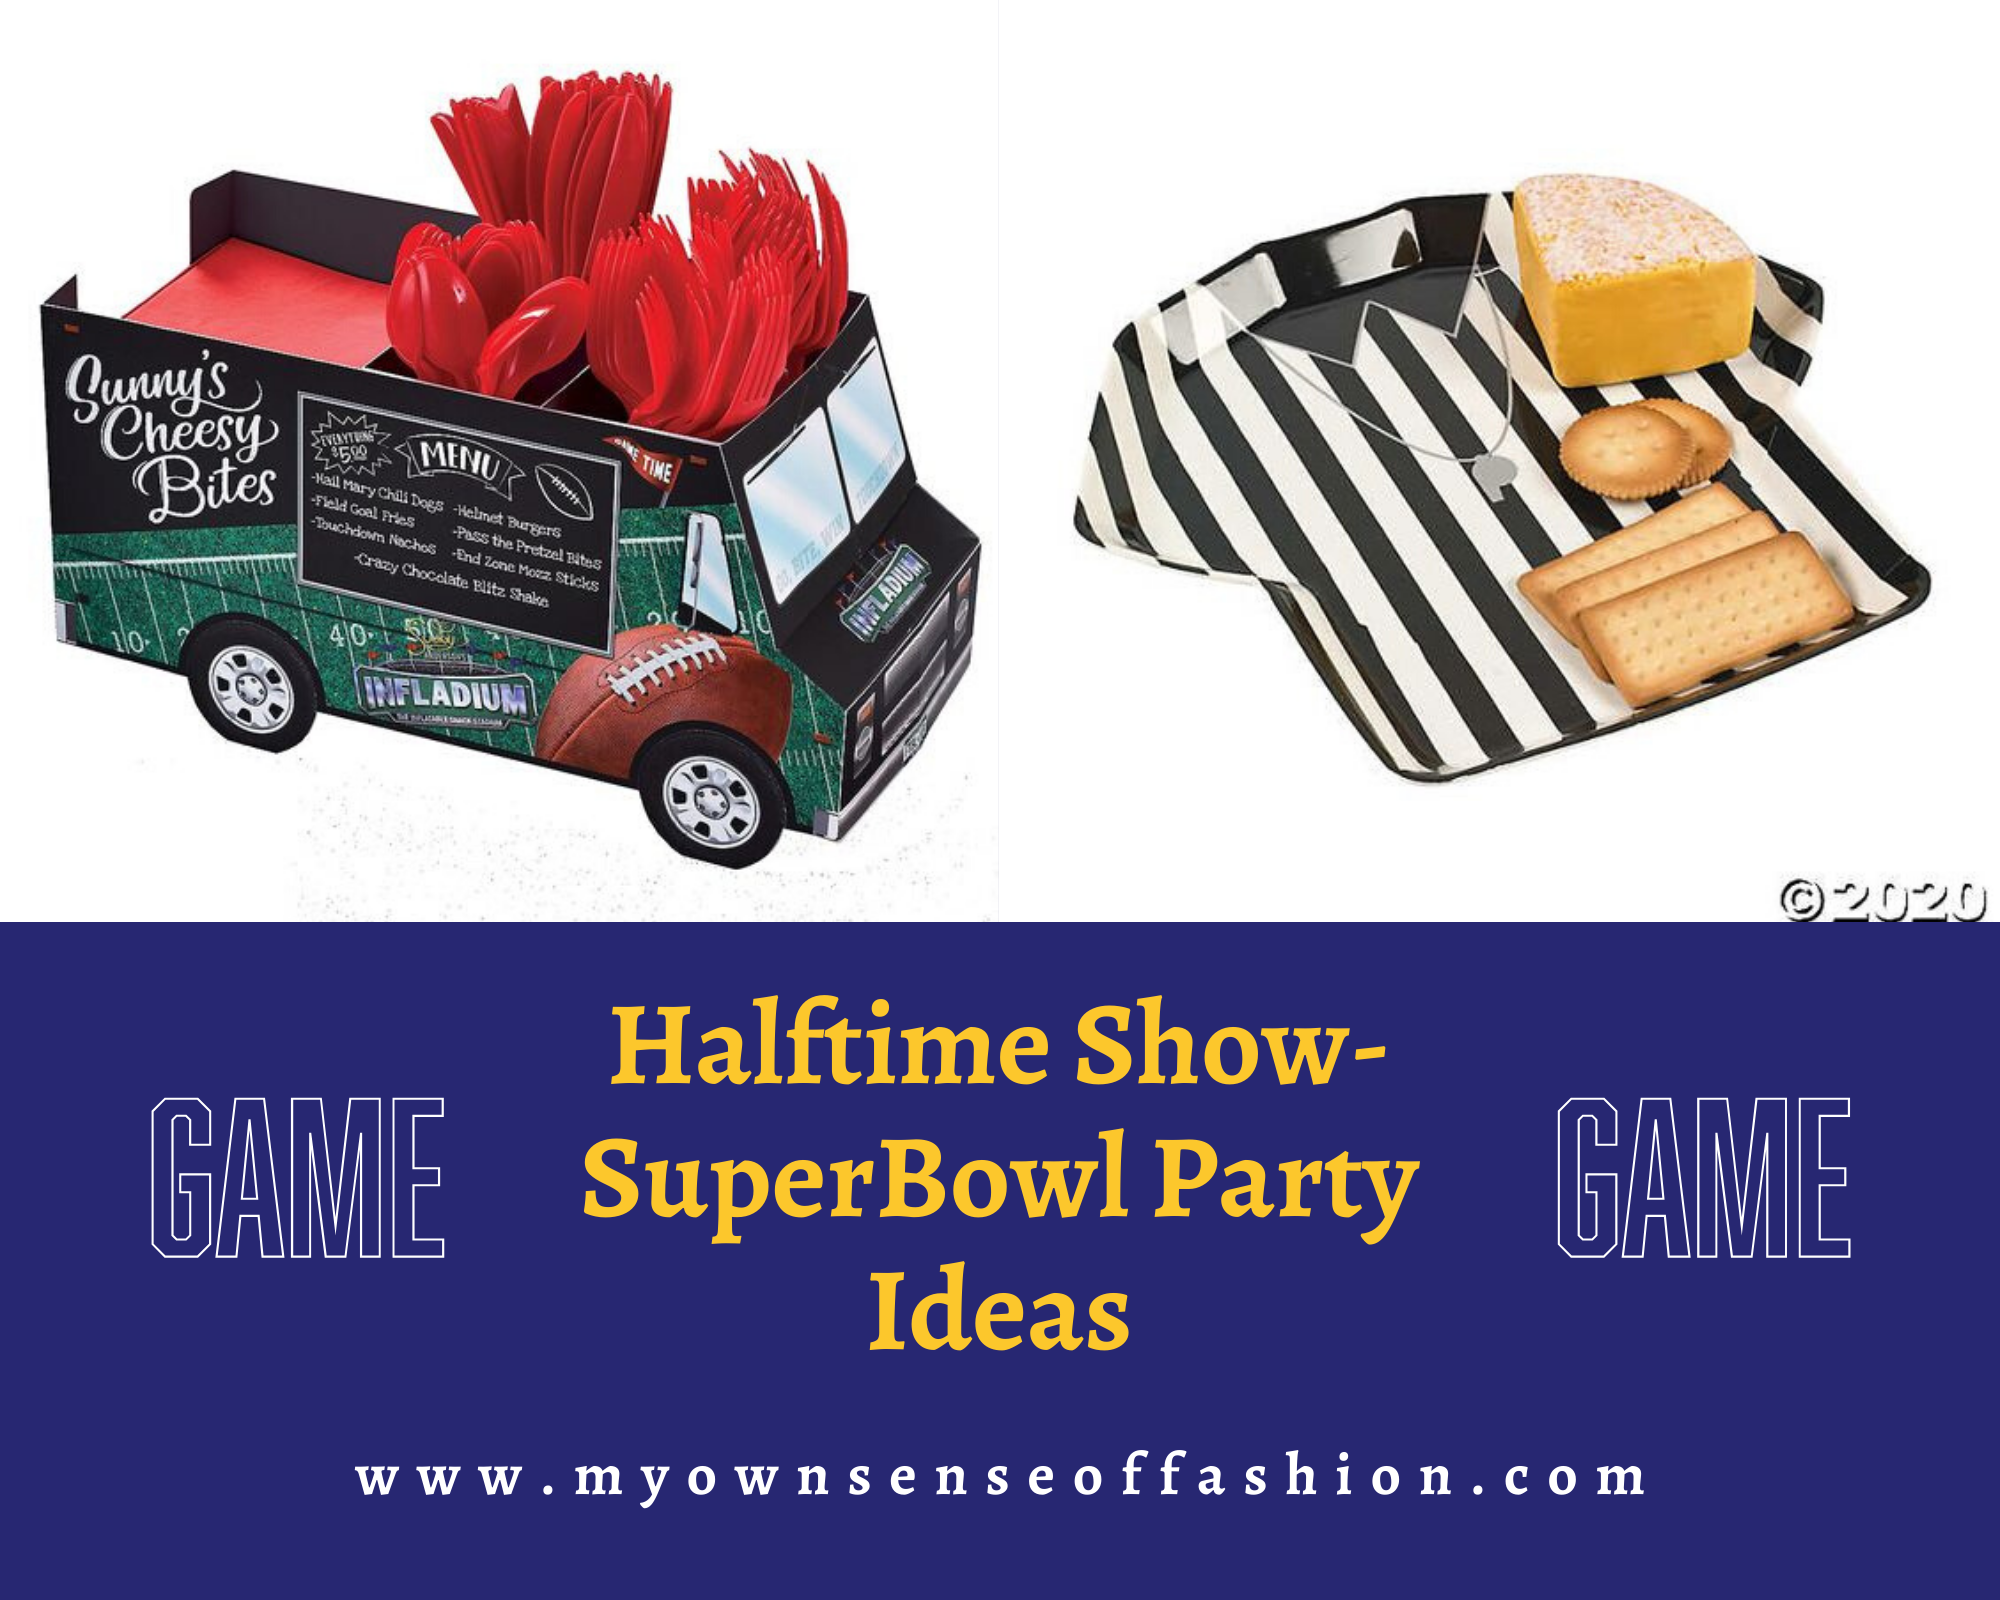 Halftime Show- SuperBowl Party Ideas